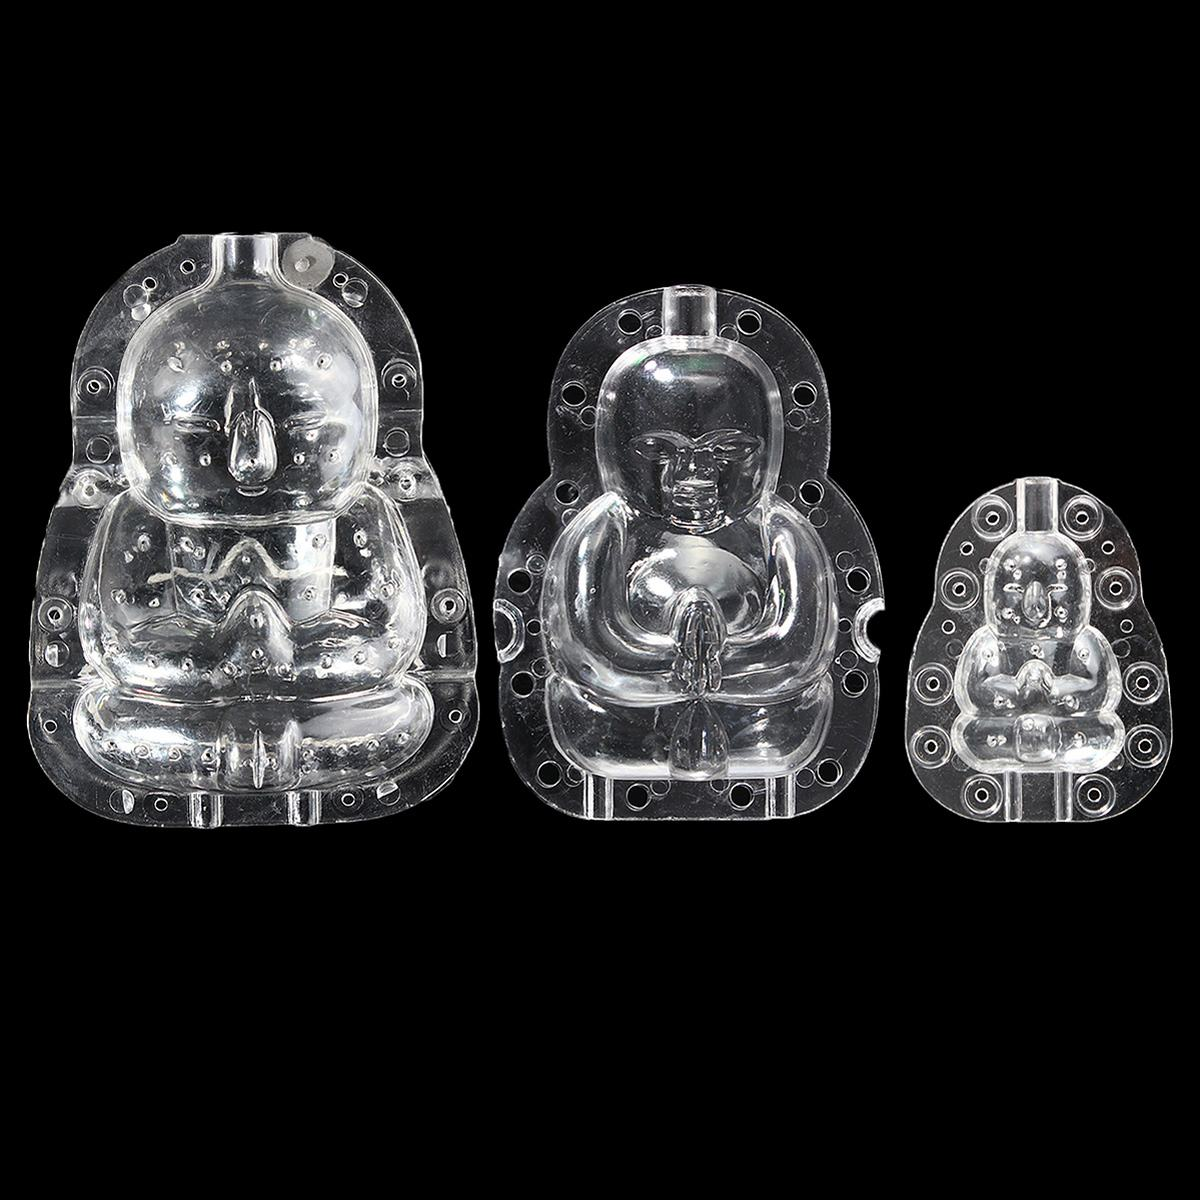 Buddha-shaped Garden Fruits Pear Peach Growth Forming Mold Shaping Tool Plant Support Greenhouse Agriculture Tools